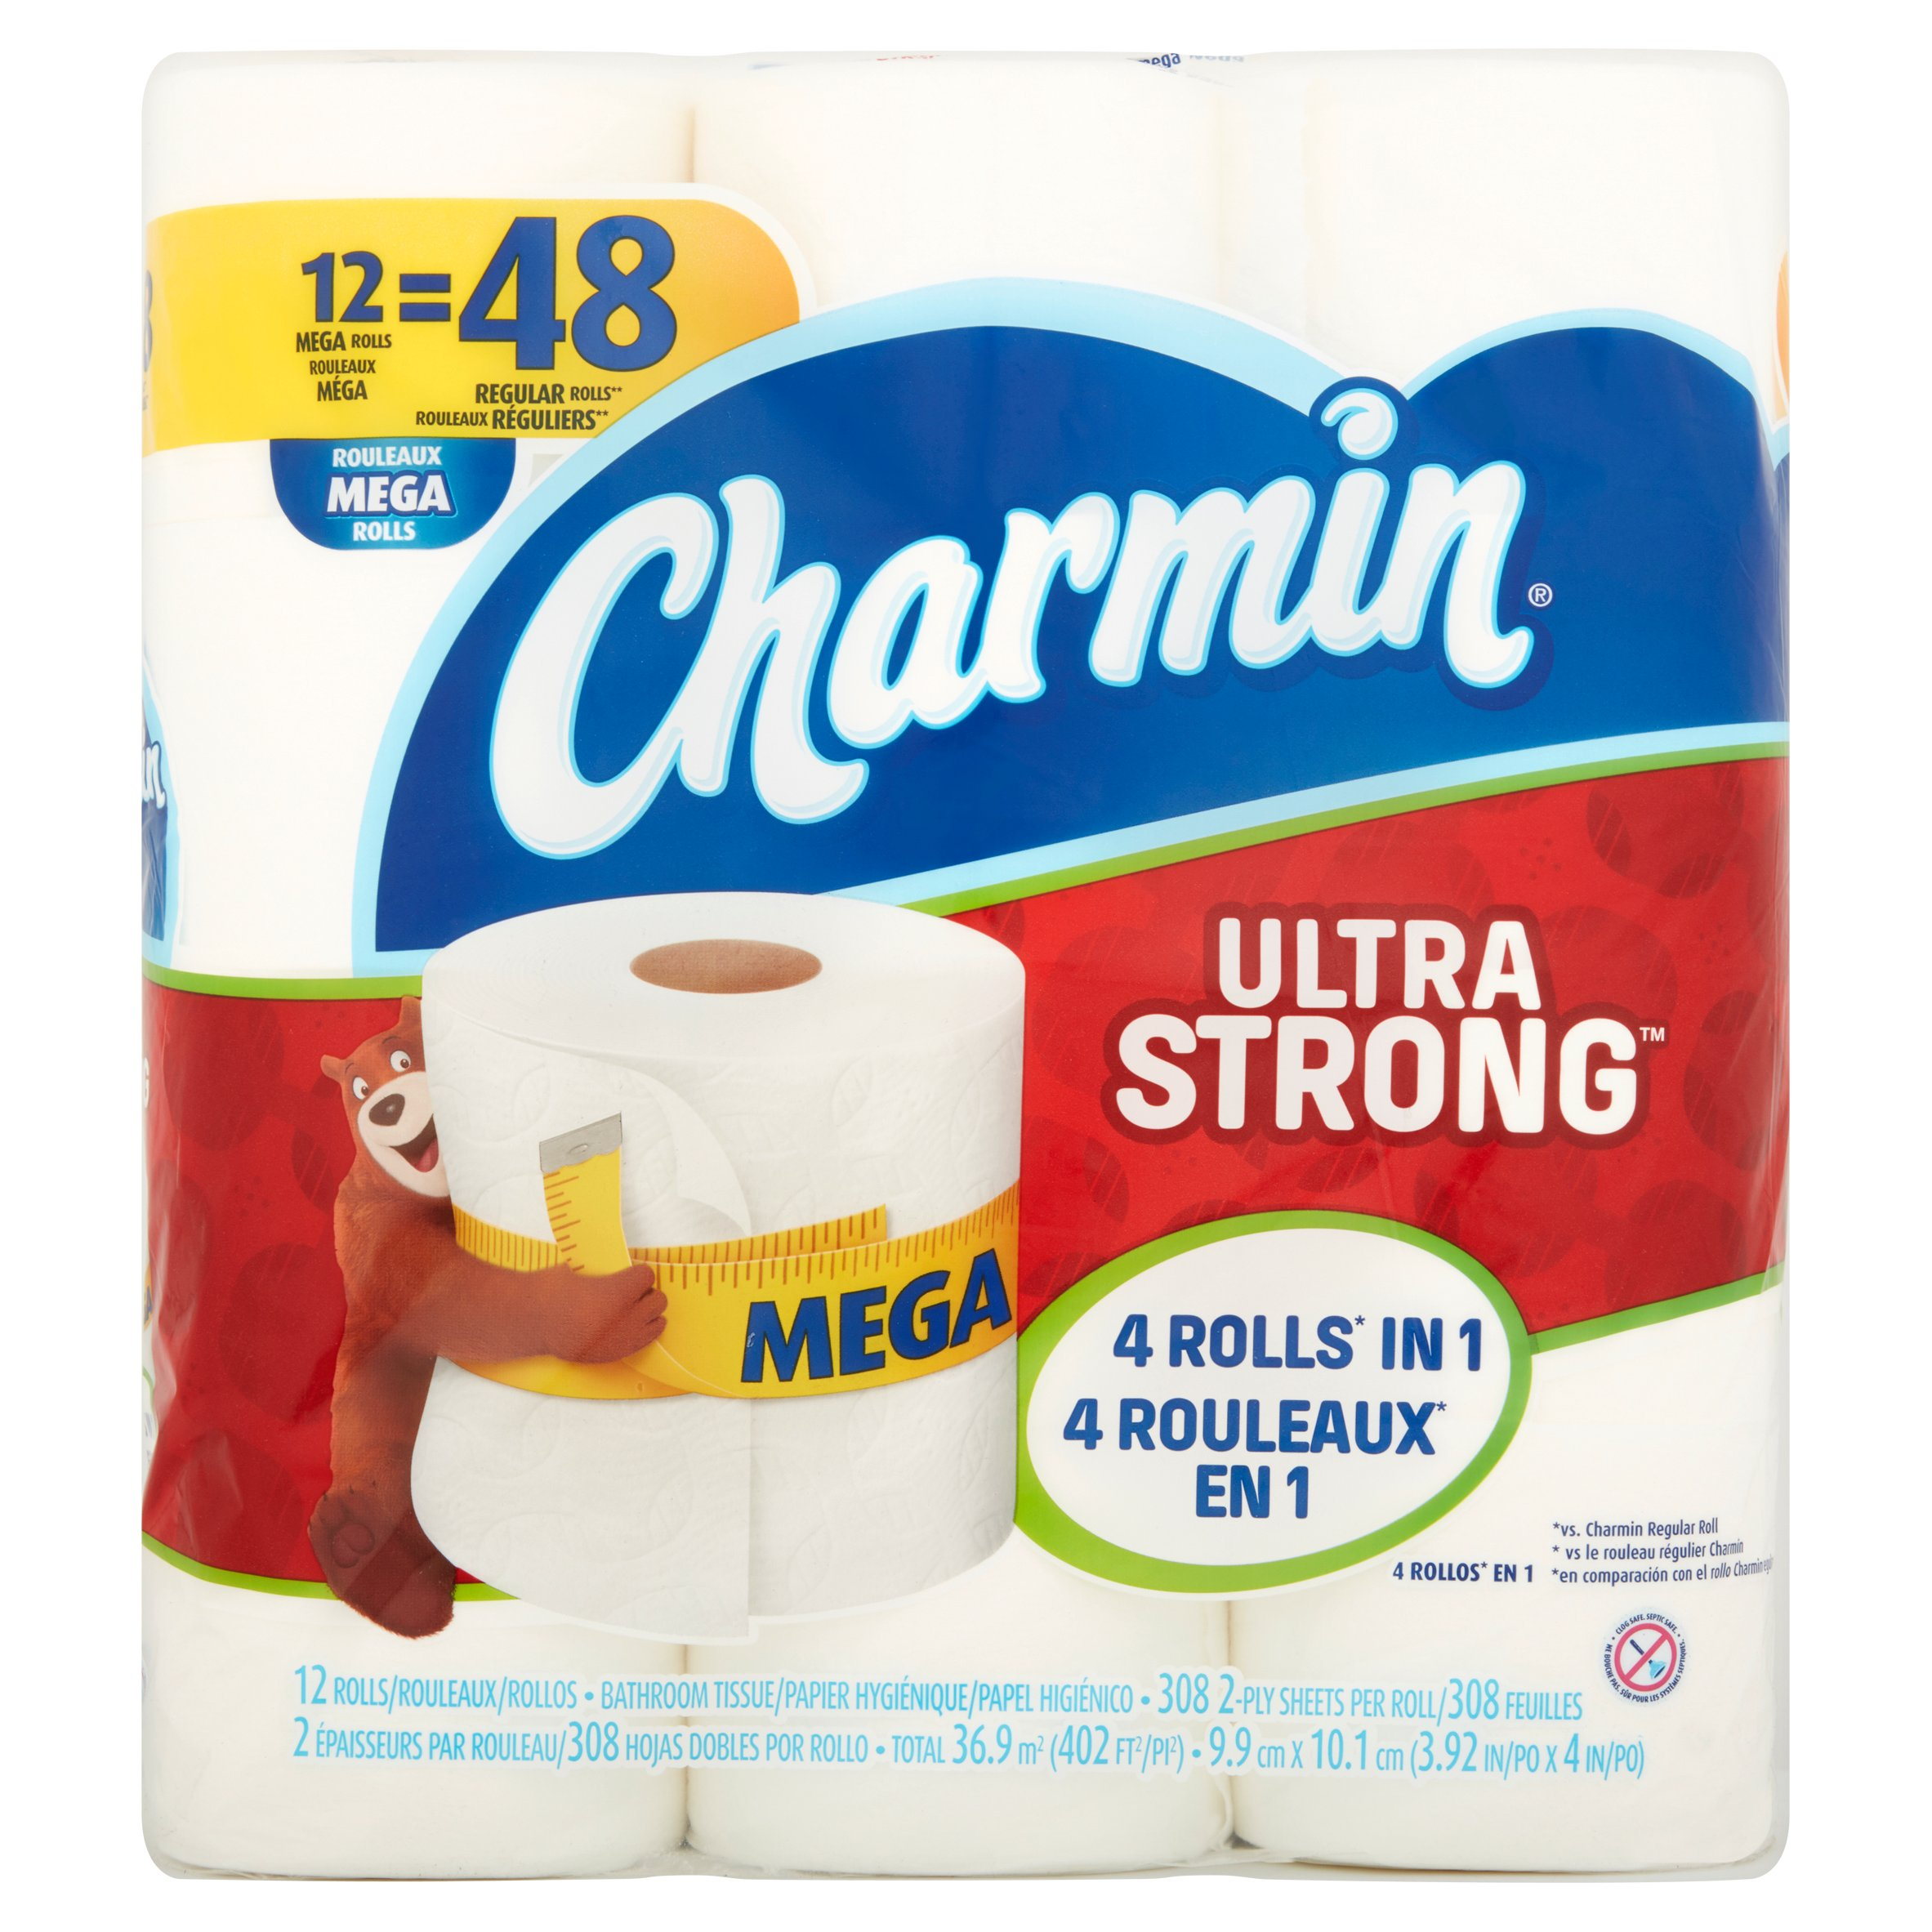 Charmin Ultra Strong Toilet Paper 12 Mega Rolls by Procter & Gamble